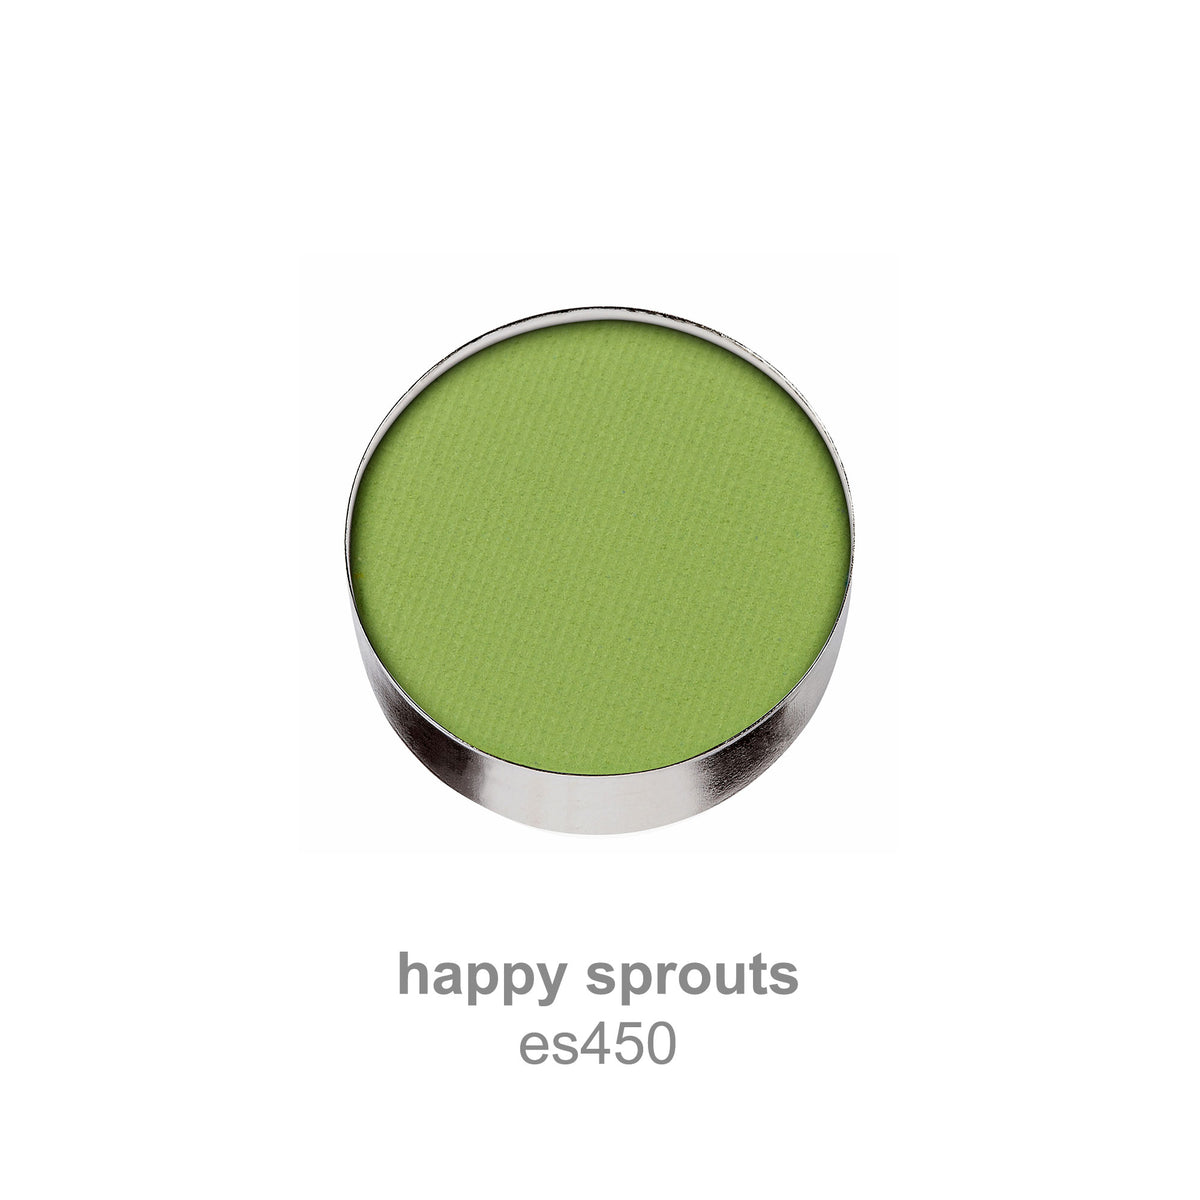 happy sprouts (es450)